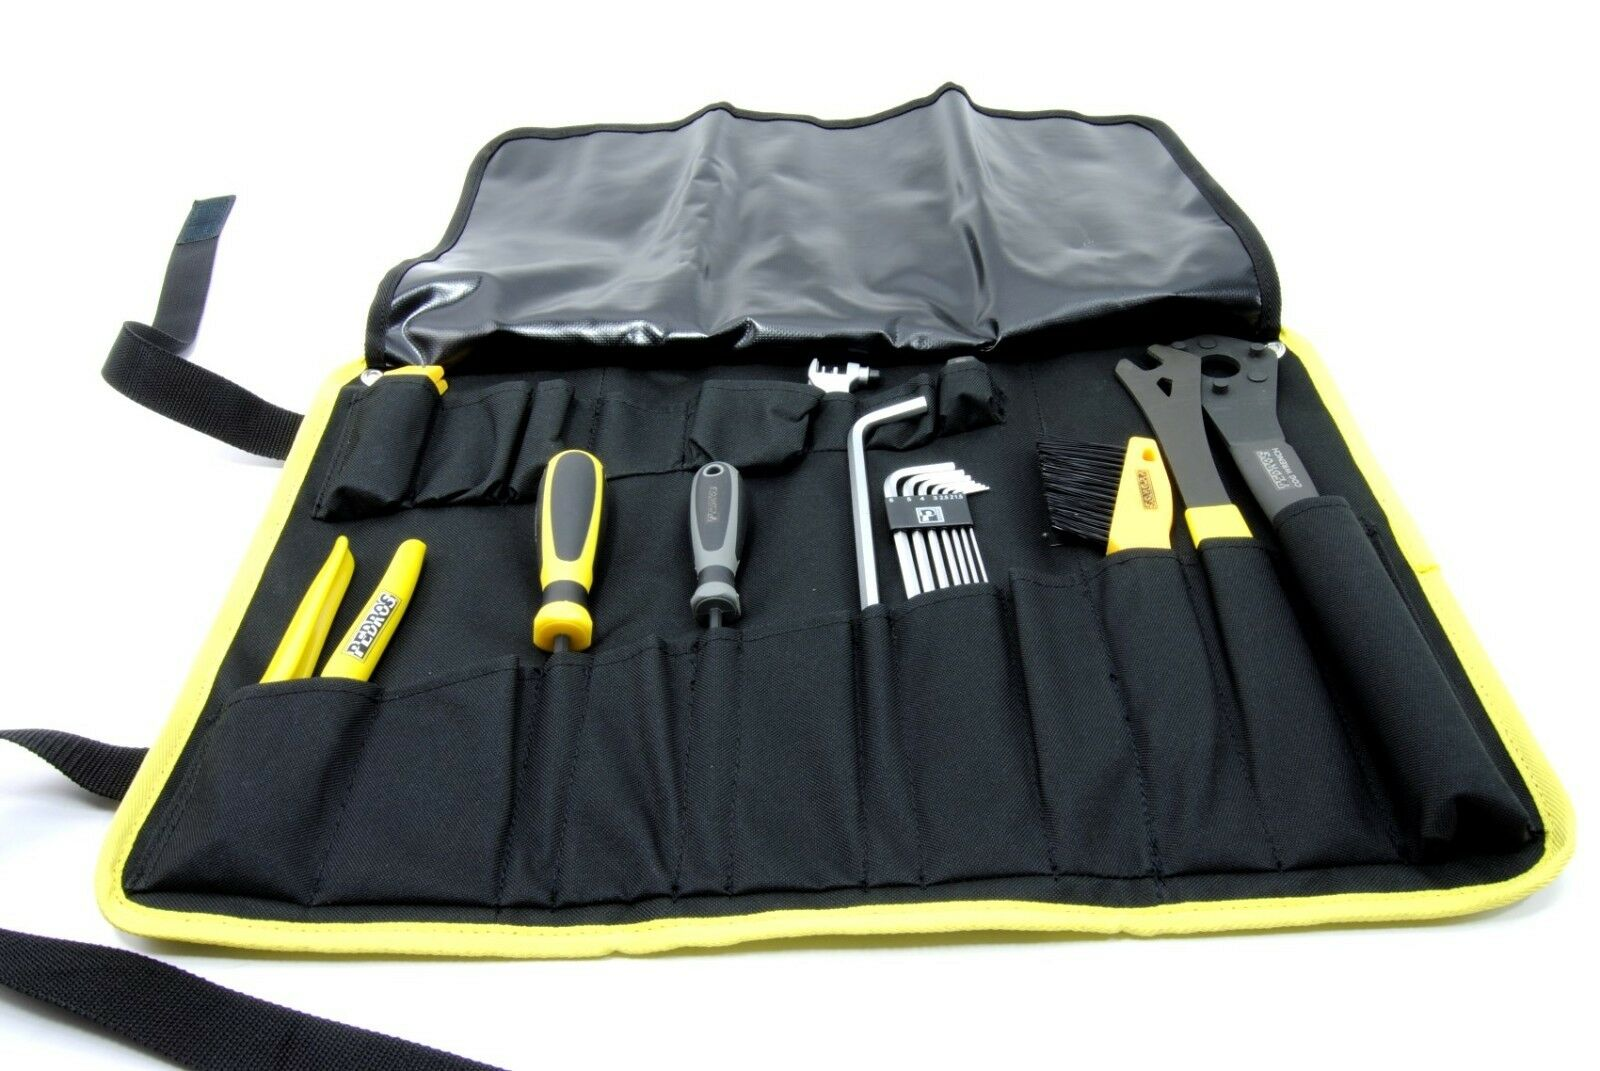 Pedro's Starter Tool Kit for Bicycle,Bike Repair,Set